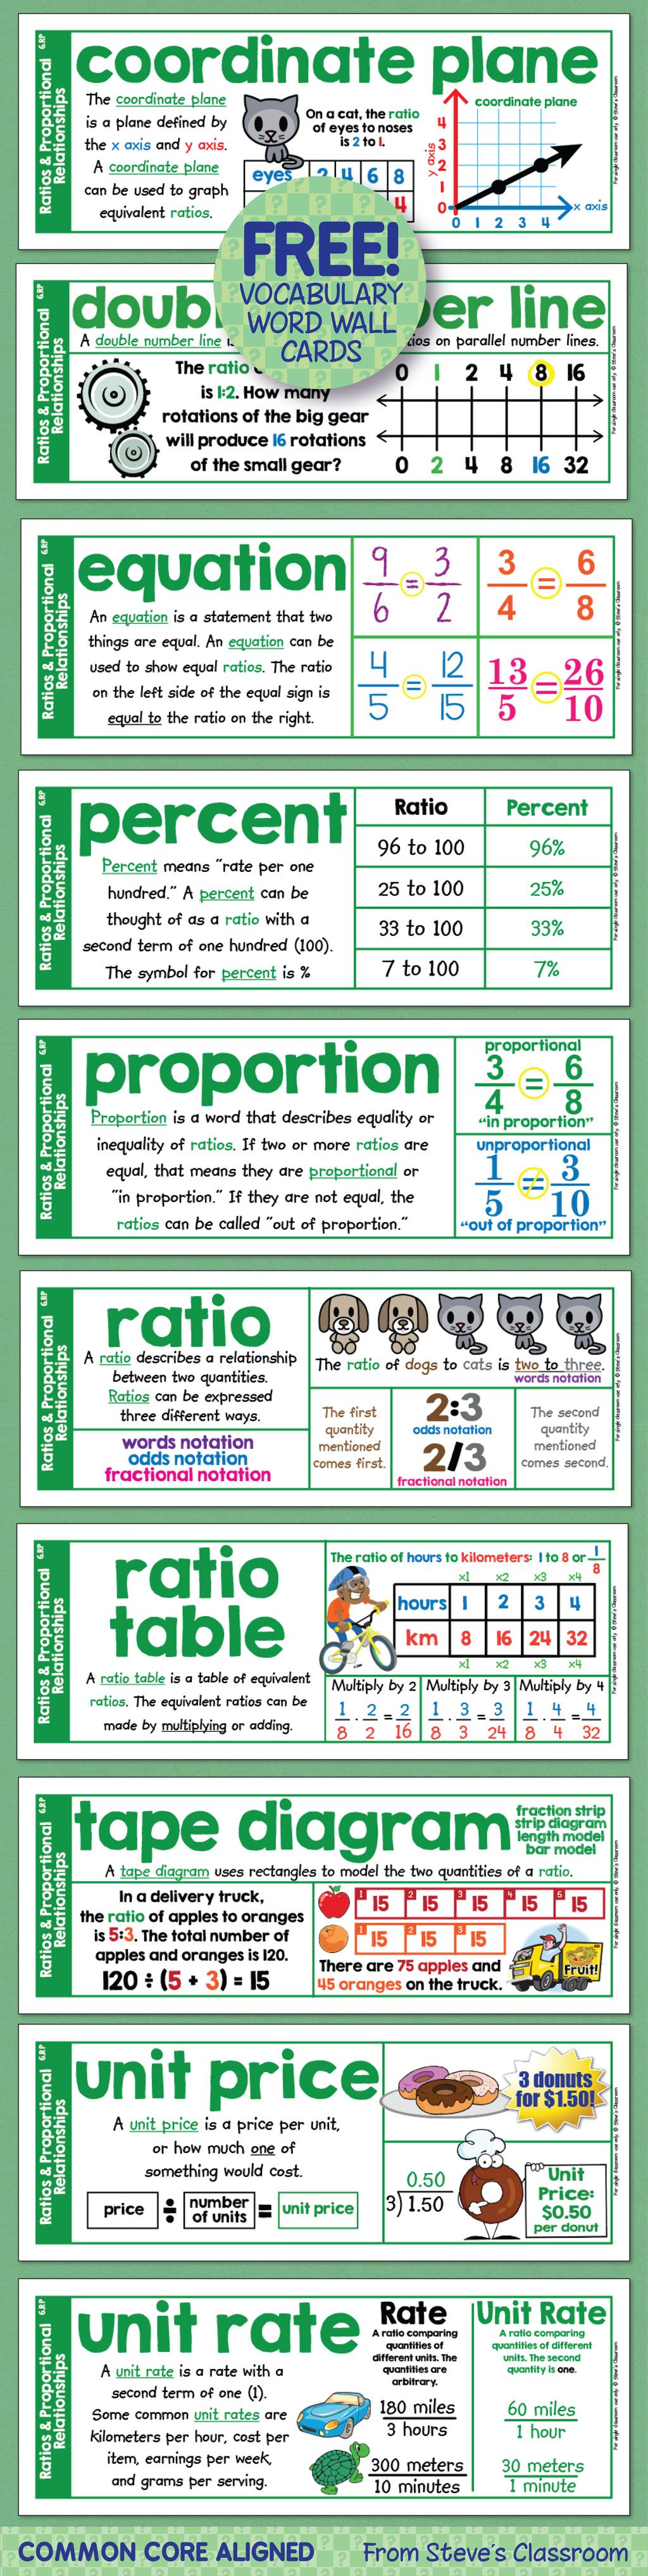 Free Word Wall Cards For Math Ratios And Proportional